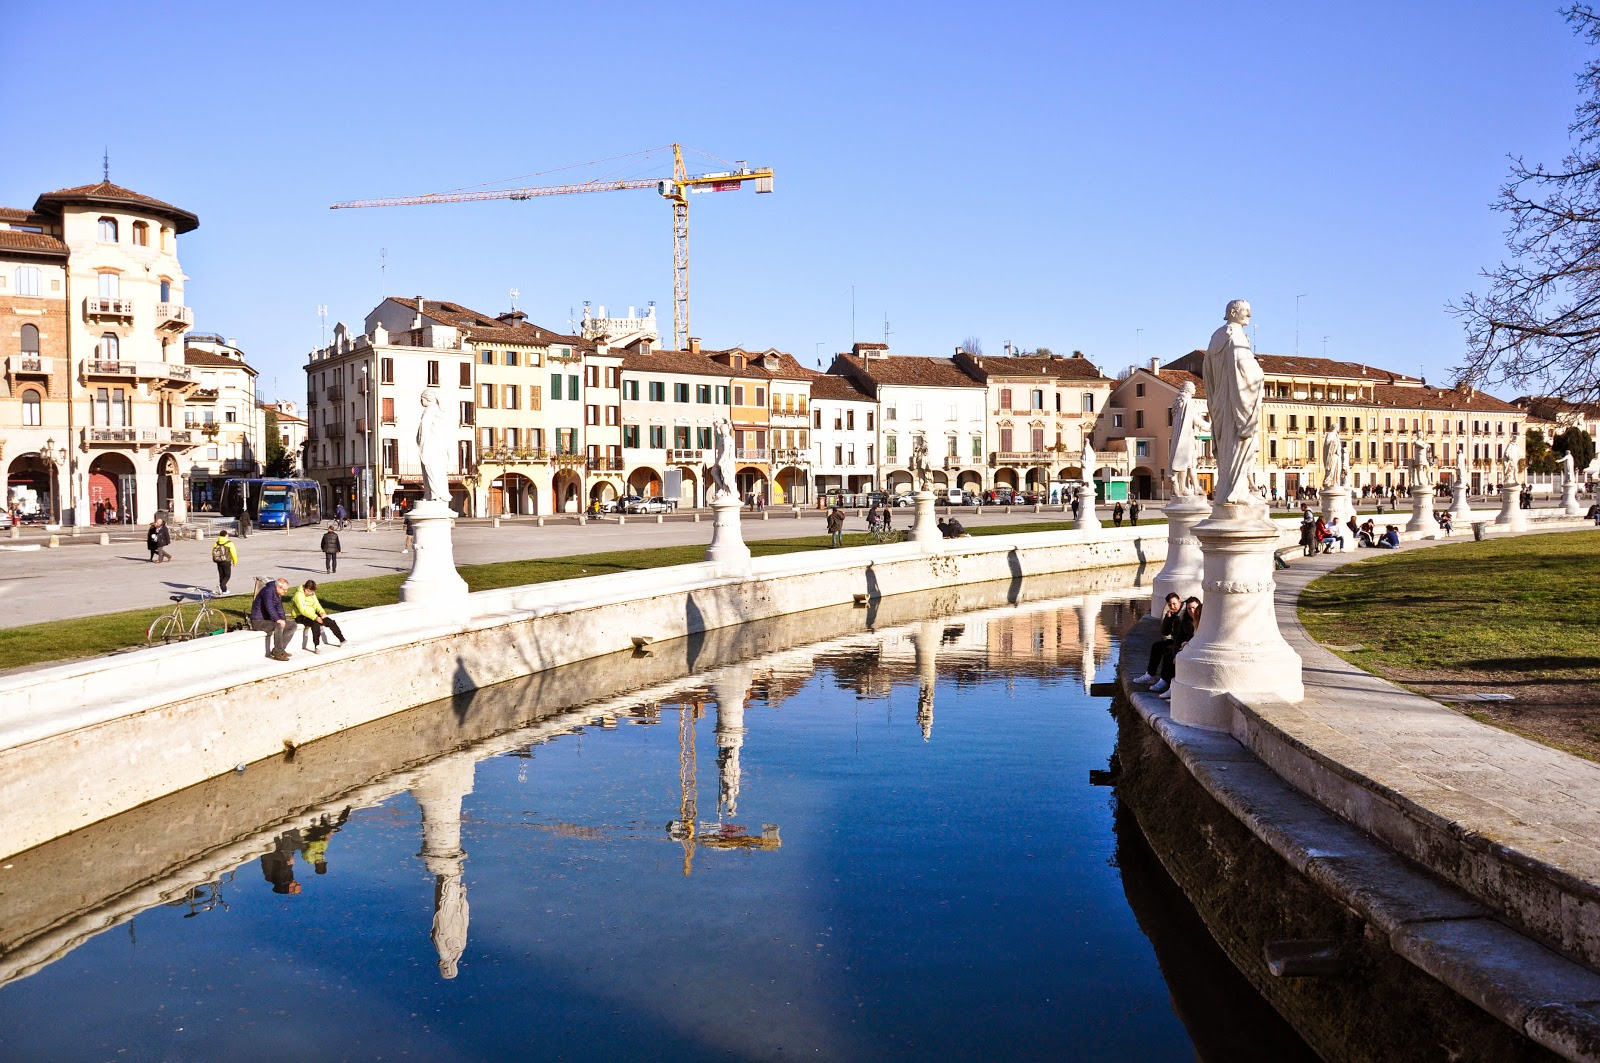 View of Prato della Valle - the biggest square in Italy is in Padua